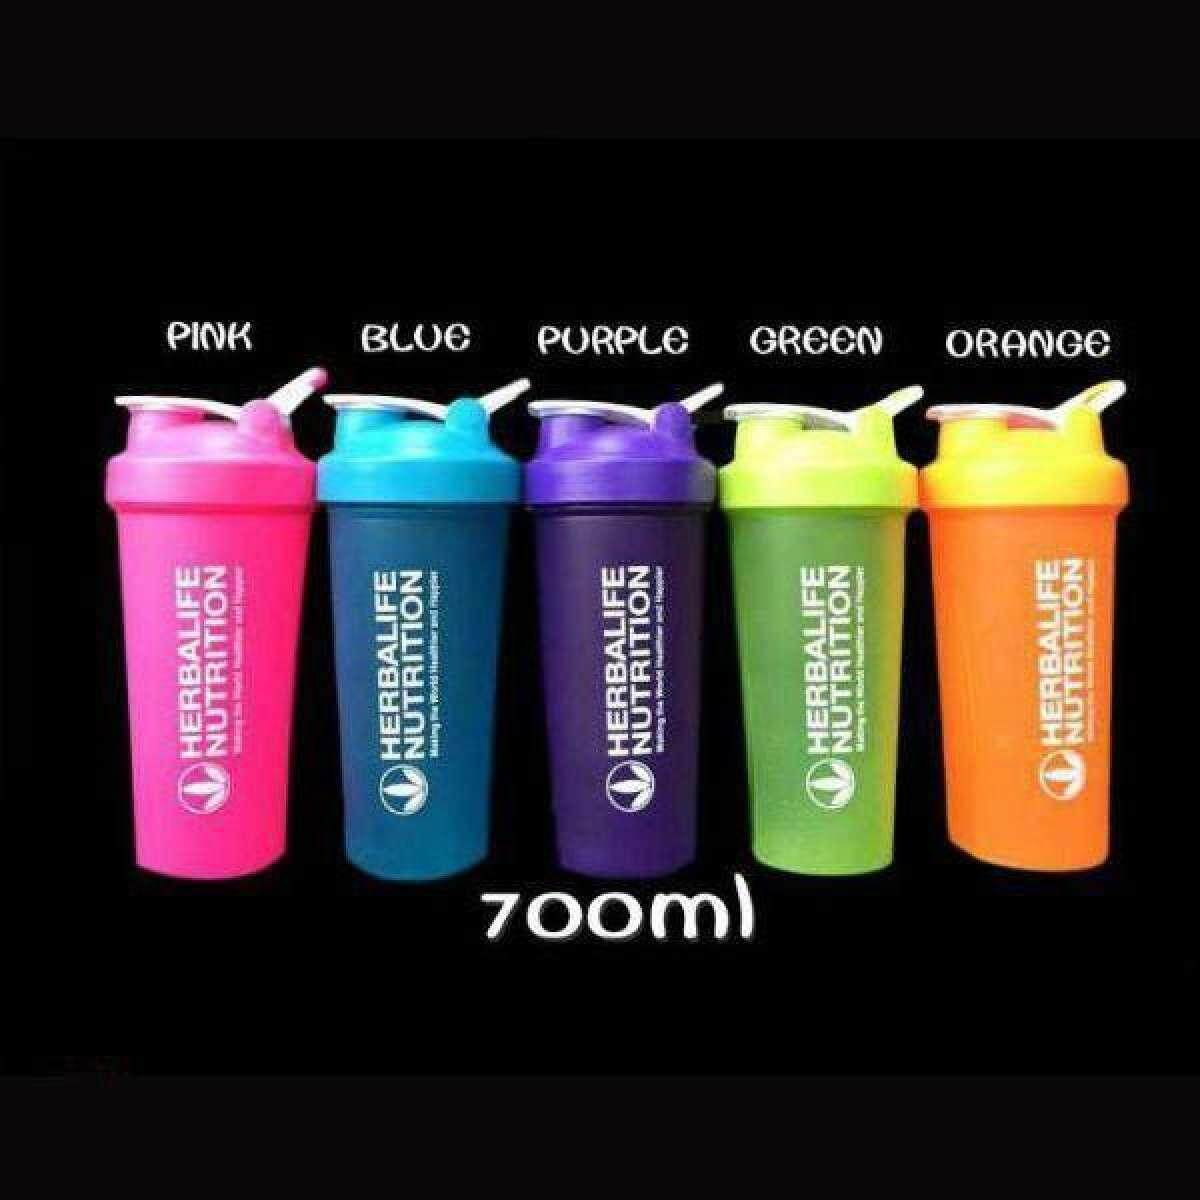 700 Ml Large Capacity Shaker Herbalife Shakes Protein Powder Fitness By Fly Automart.